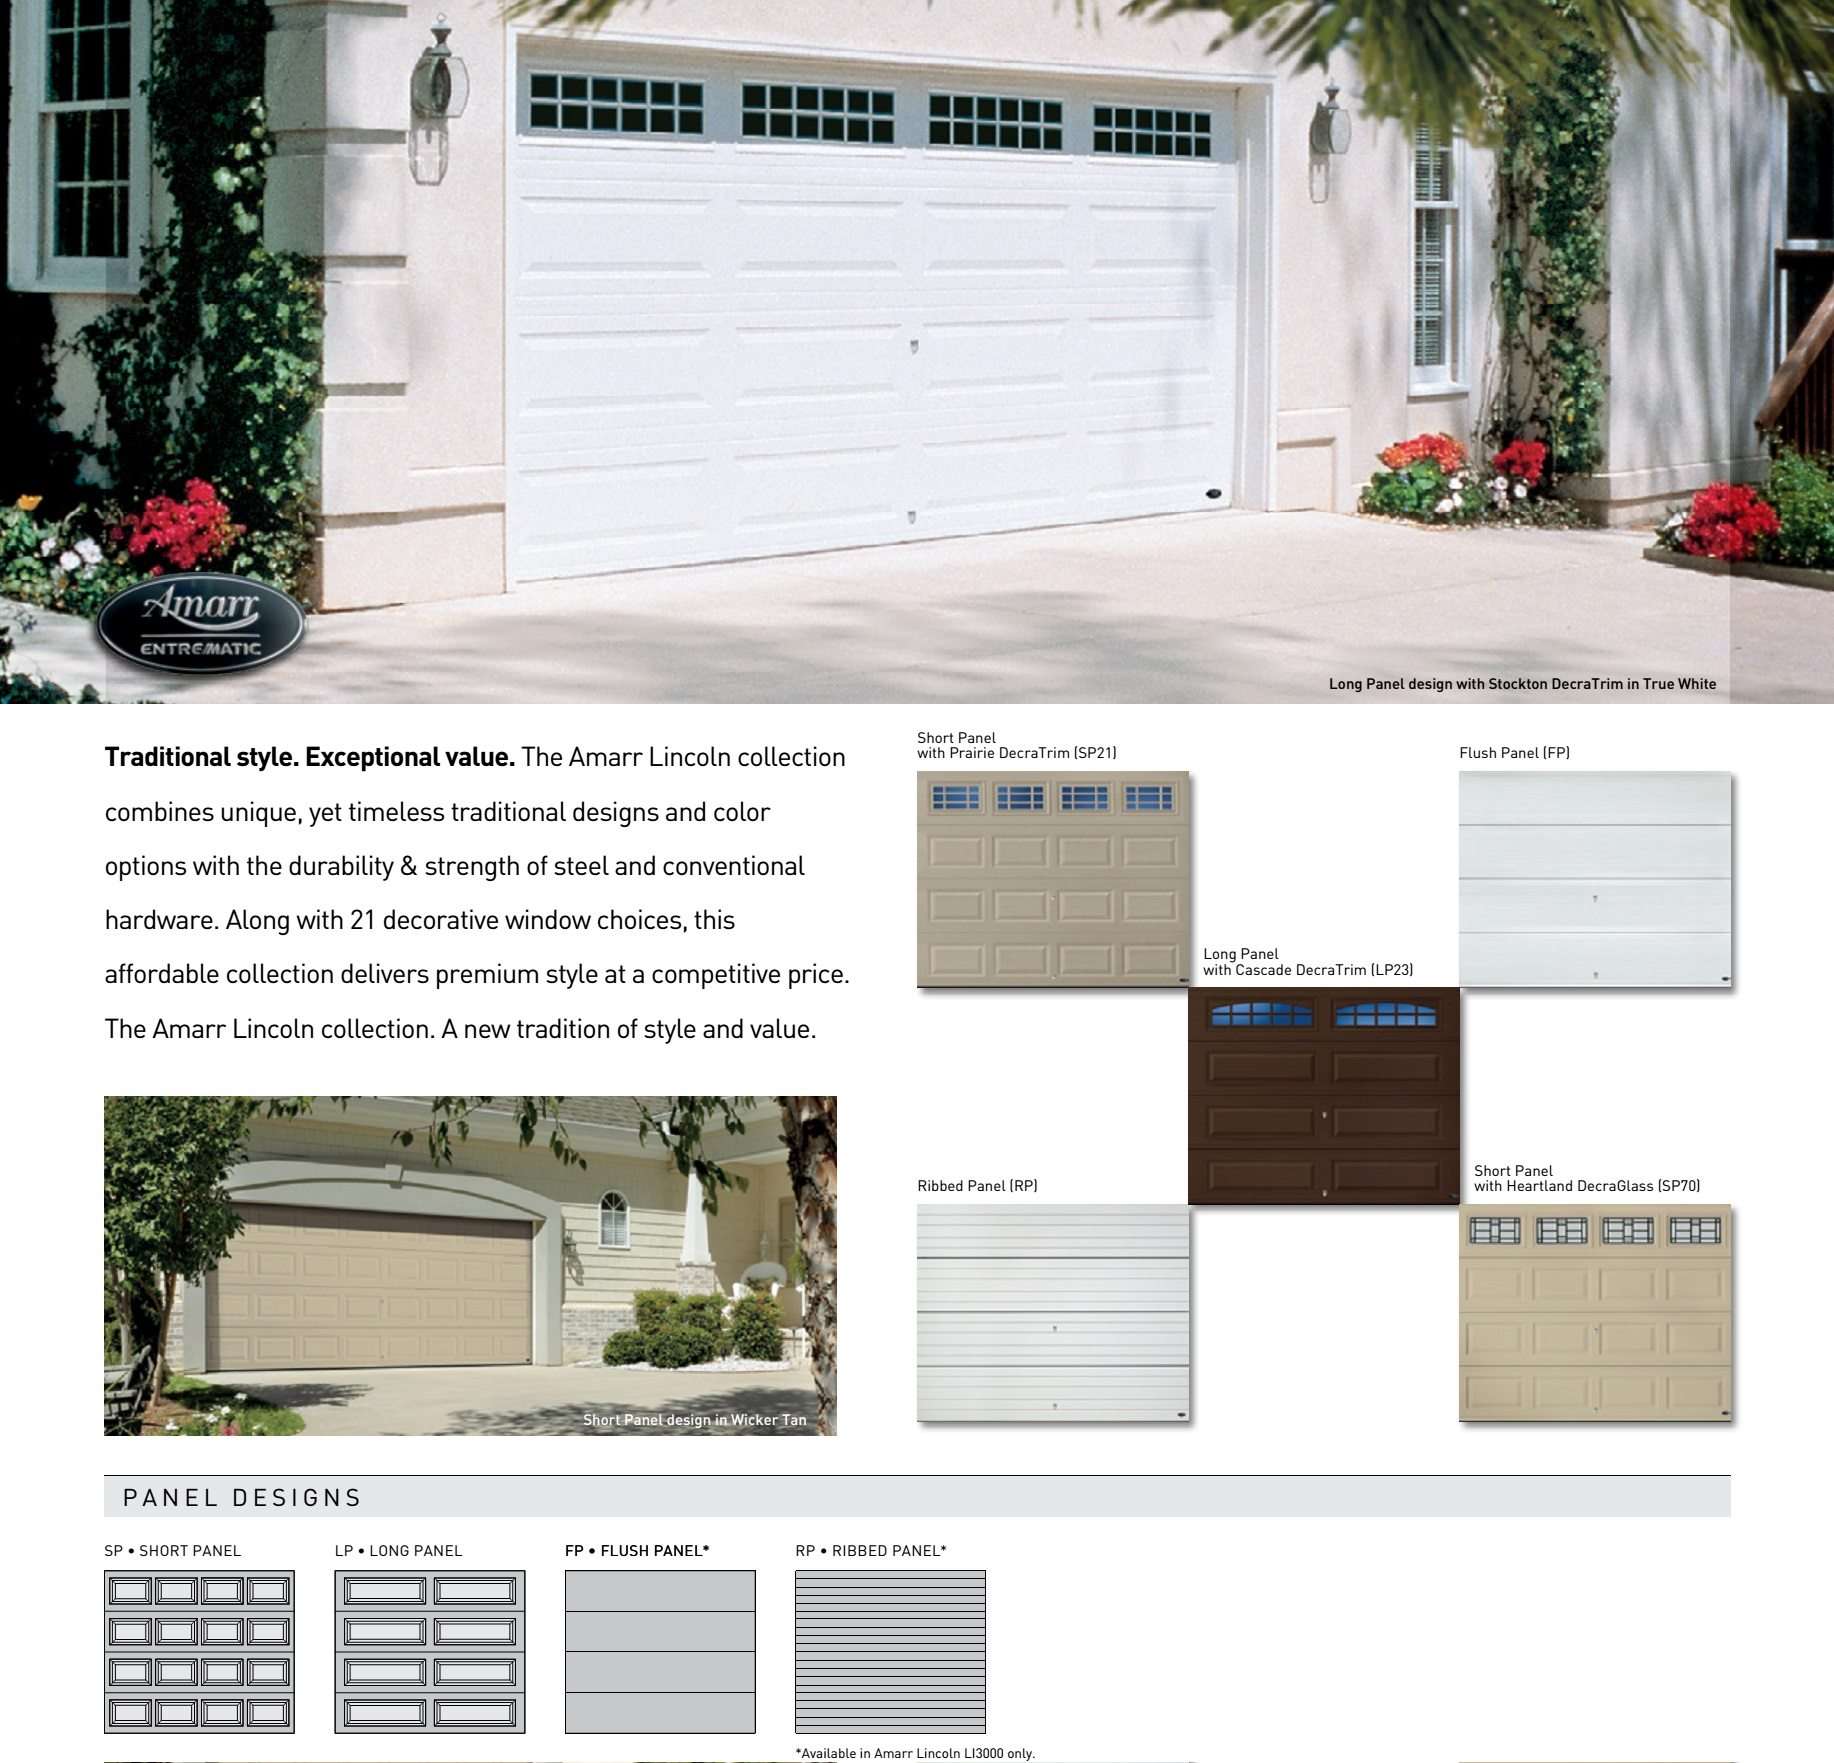 designs you garage doors of door to electric lock have styles image know springs and types